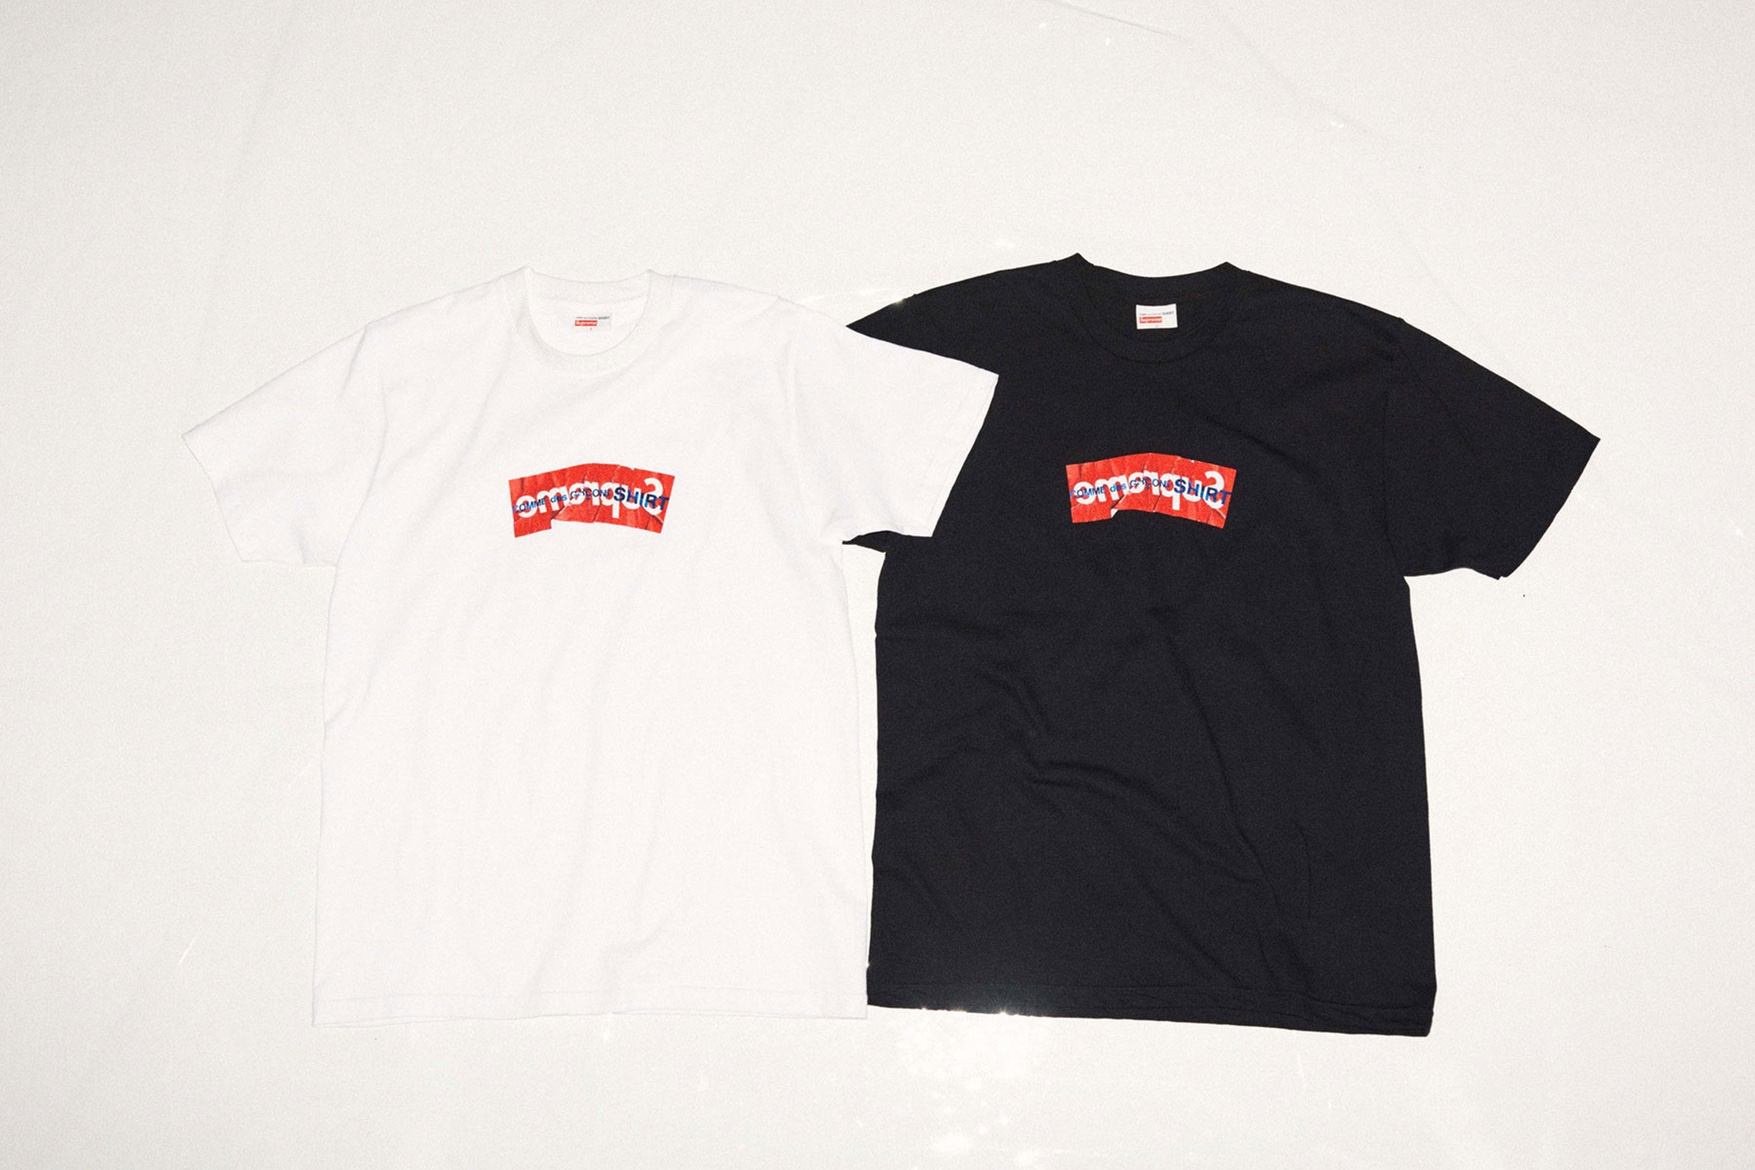 http---hypebeast.com-image-2017-04-supreme-comme-des-garcons-shirt-2017-spring-summer-collection-box-logo-tee-group-17.jpg